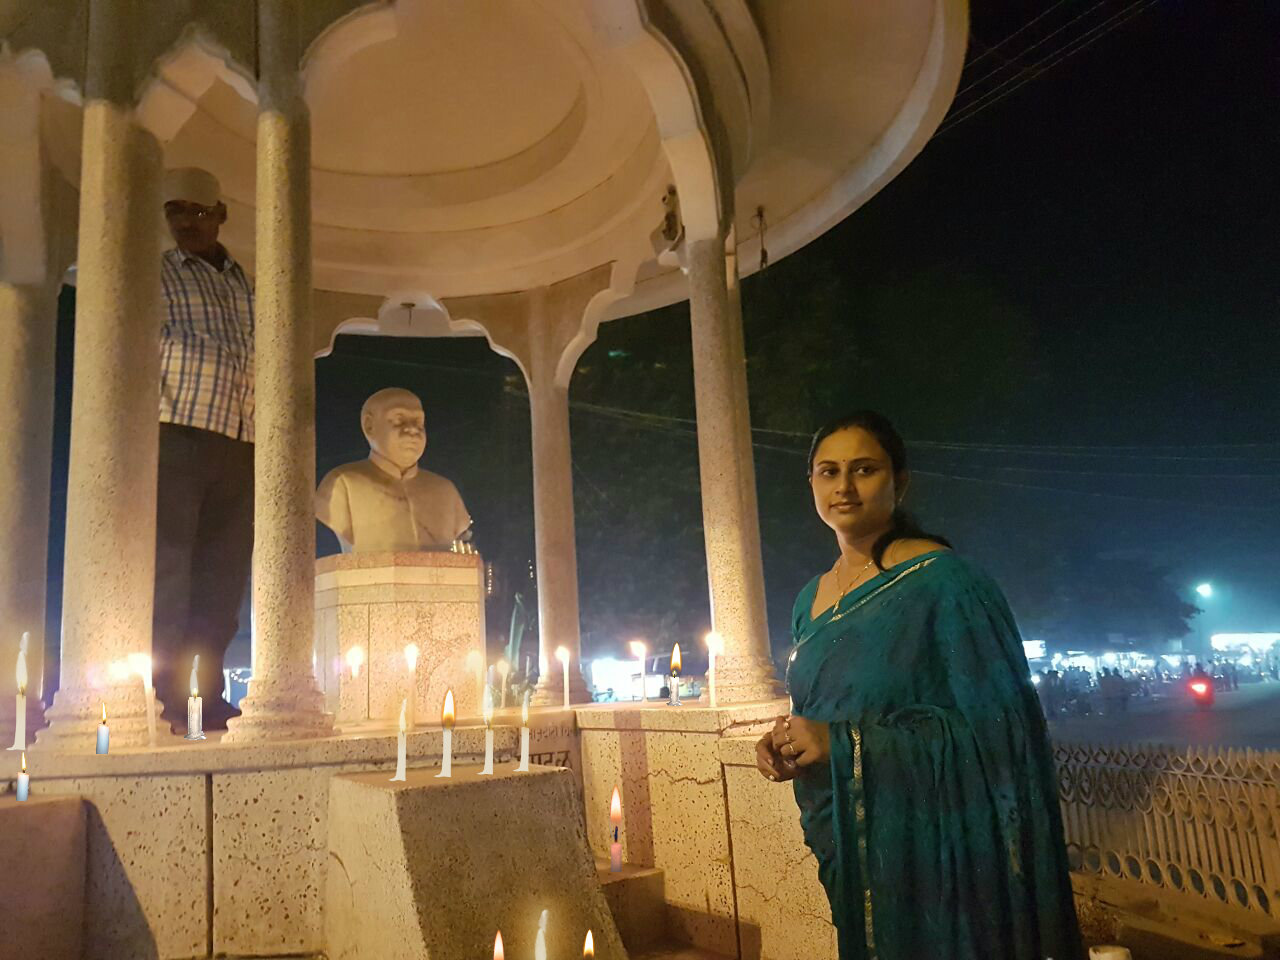 Dr.Madhepuri's Daughter, Dr.Rashmi Bharti (Gynecologist) lighting candles in memory of Udi Martyrs on the eve of Diwali at Madhepura, Bhupendra Narayan Mandal Chowk.